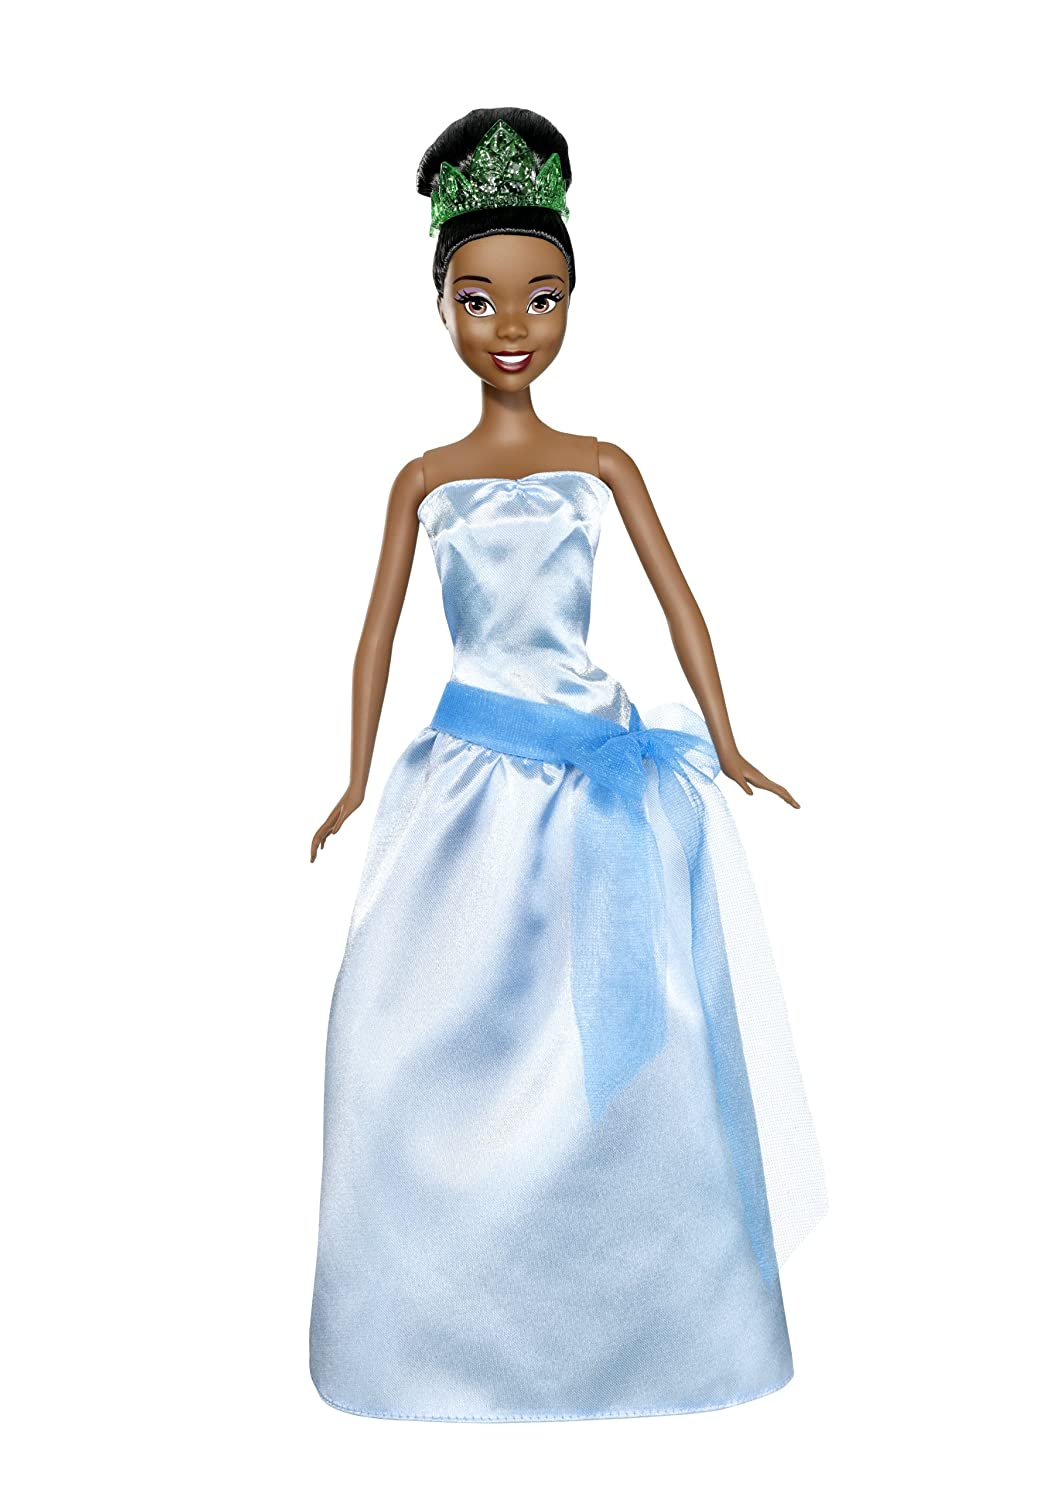 Amazon.com: Mattel Disney Princess 2-In-1 Ballgown Surprise Tiana ...